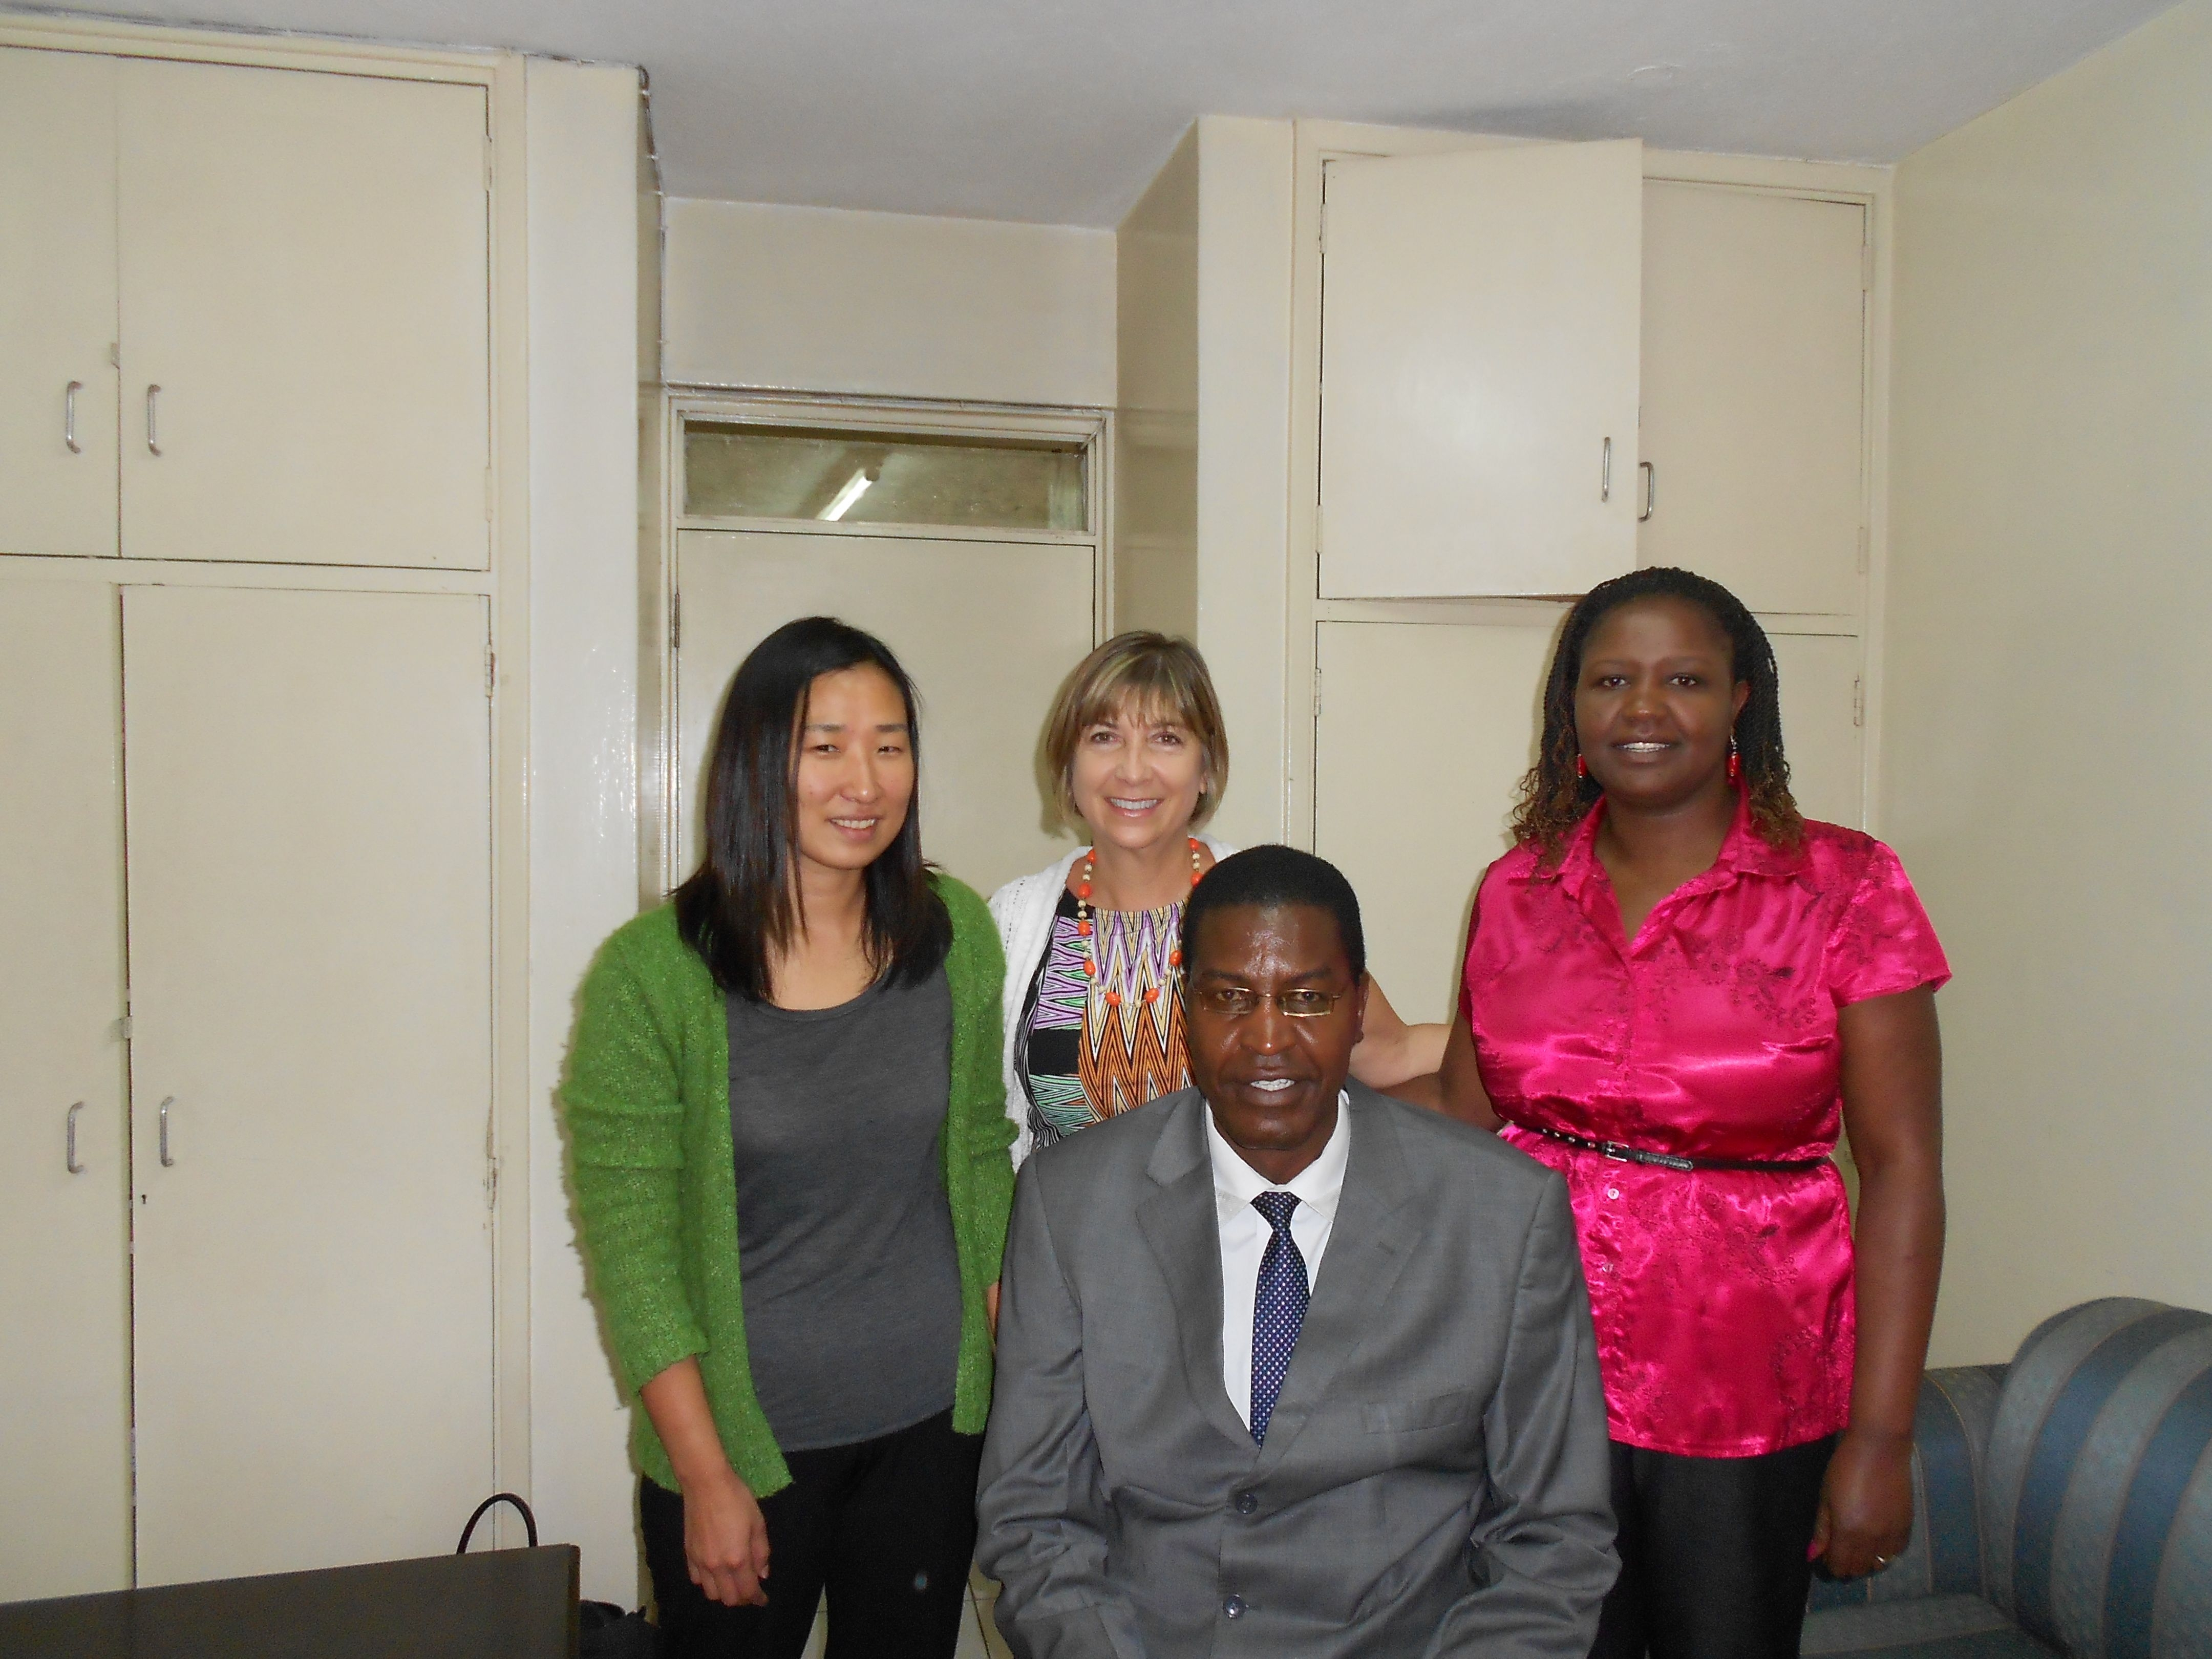 L to R: Yeon Yoo Dr. Nancy Cabelus & Irene Mageto. Seated Dr. Ngure